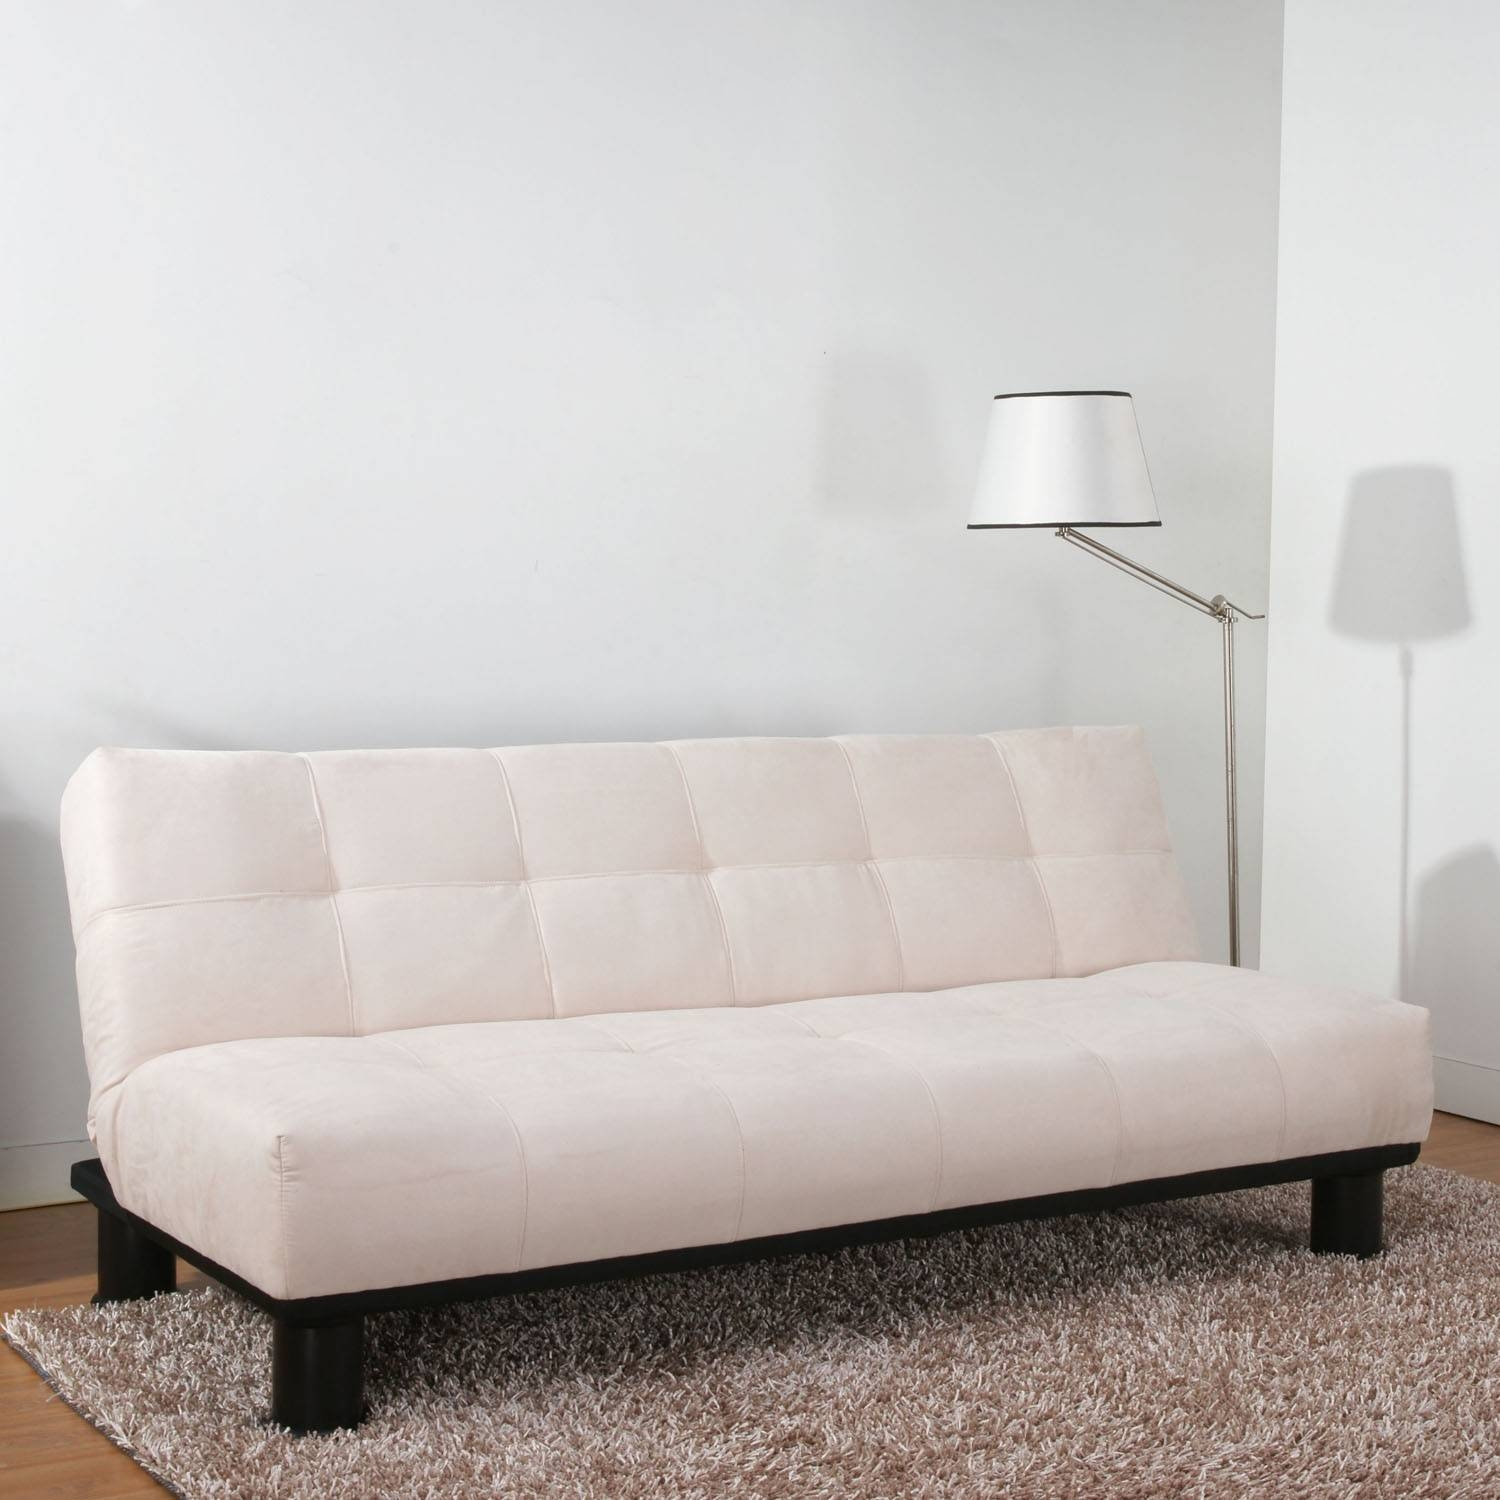 Bella Beige Faux Suede Sofa Bed 1Jpg, Suede Sofa Avworld In Faux Suede Sofa  Bed